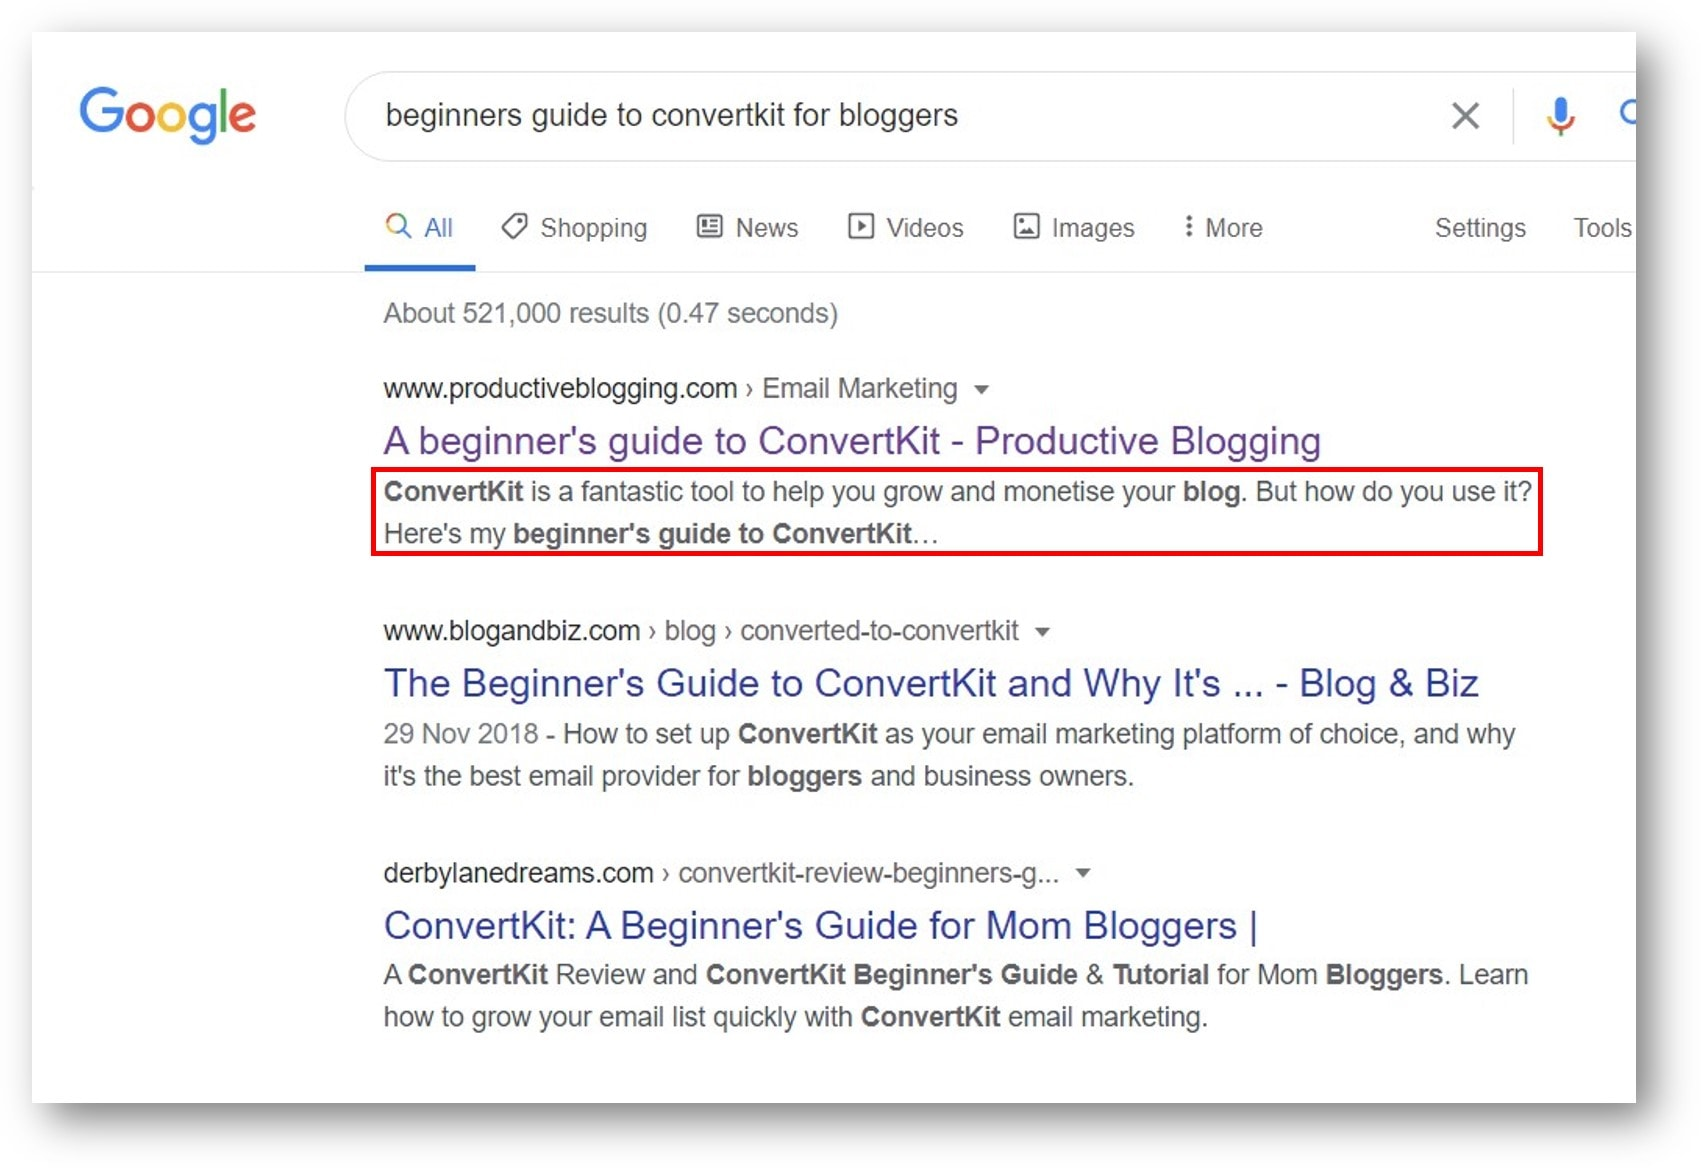 Example of a meta description which is compelling, it reads 'ConvertKit is a fantastic tool to help you grow and monetise your blog. But how do you use it? Here's my beginner's guide to ConvertKit…'